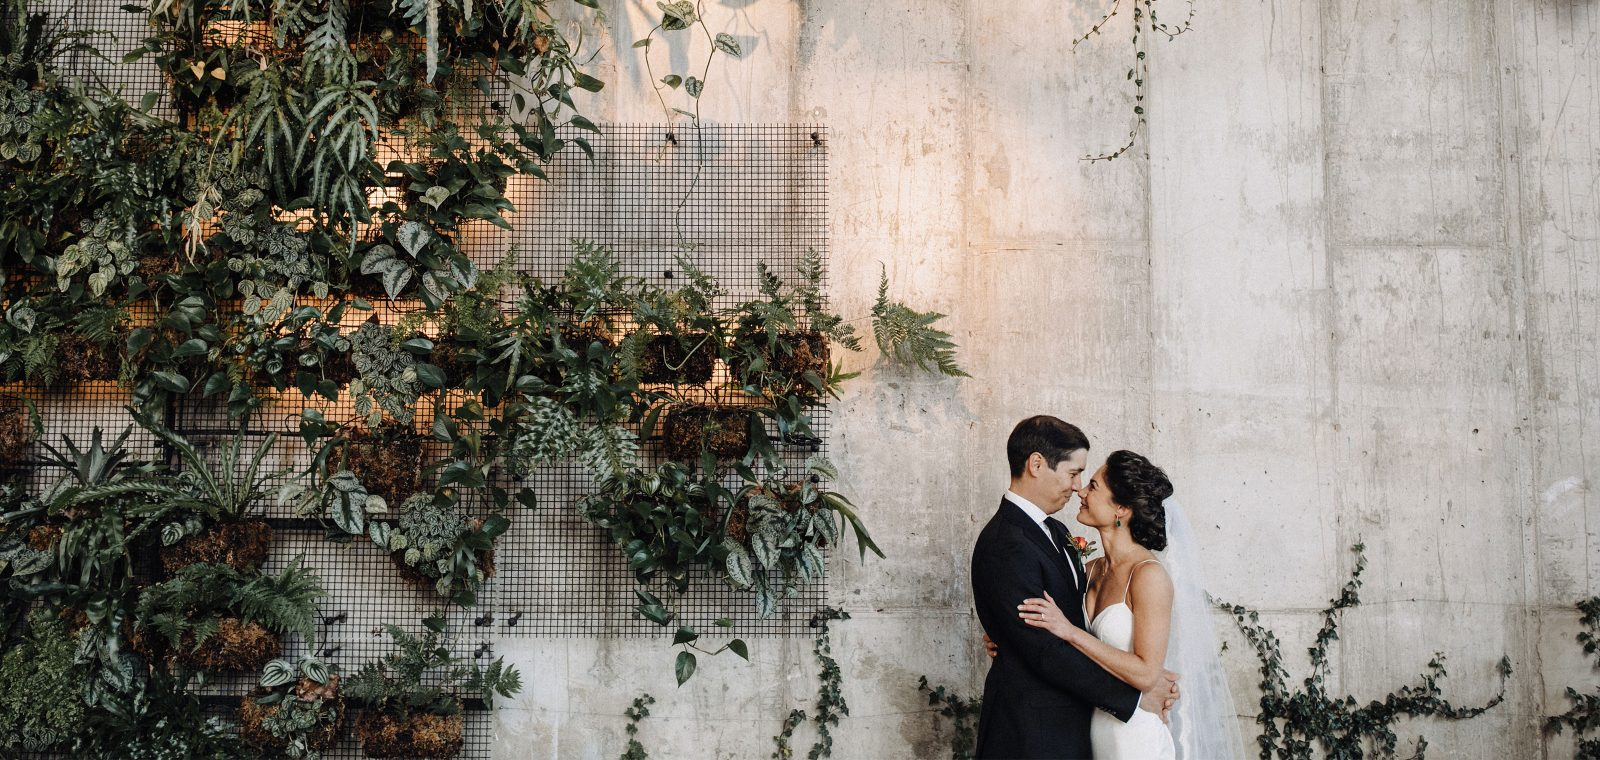 The Green Building Wedding – Brooklyn, New York – Hayley & Tim